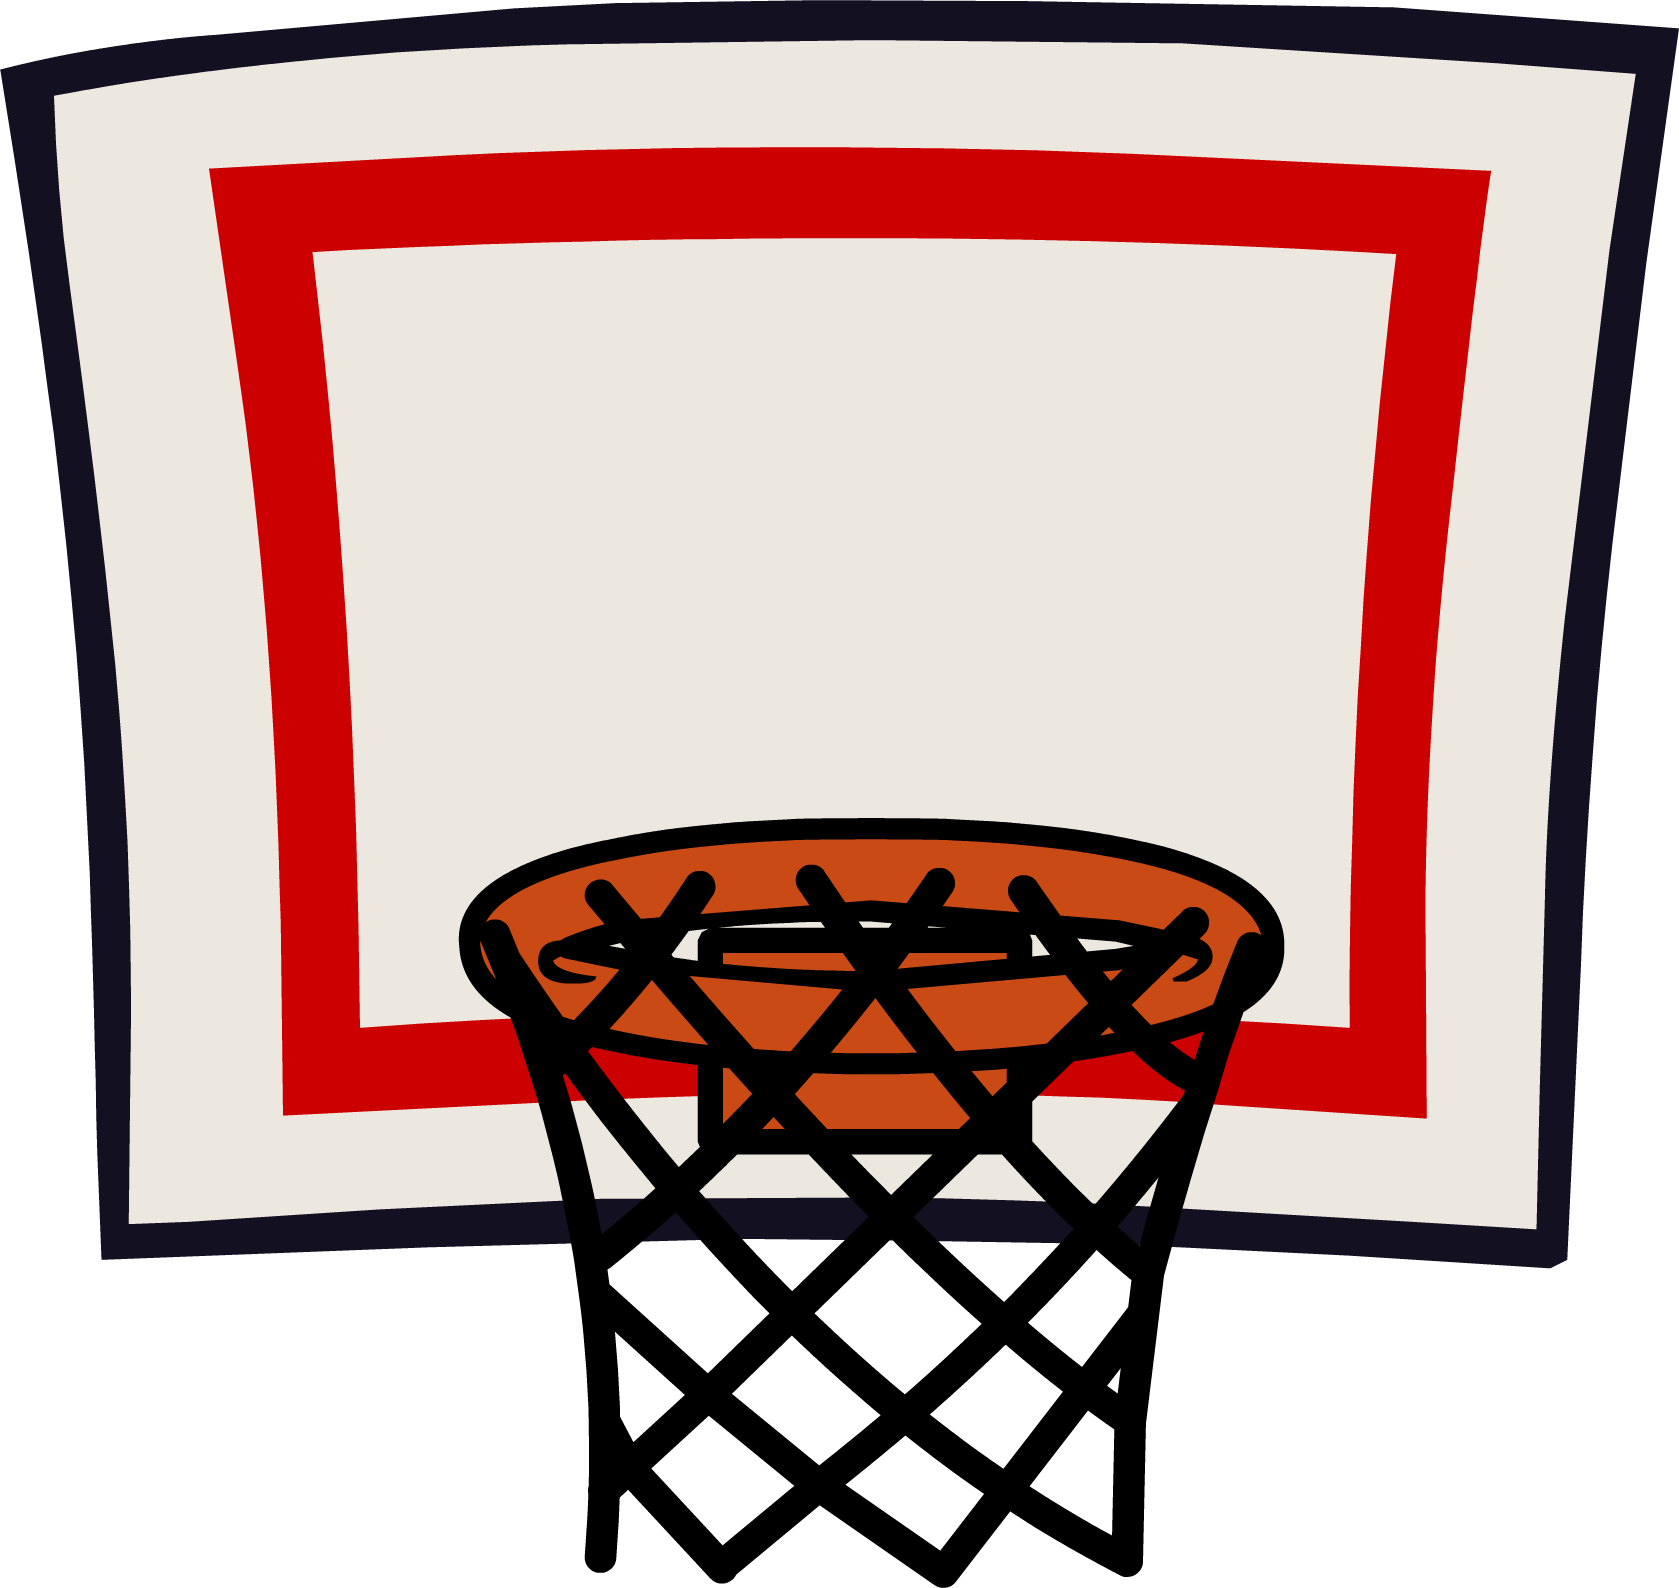 Free basketball net clipart picture royalty free library 28+ Collection of Basketball Board Ring Clipart Png | High quality ... picture royalty free library